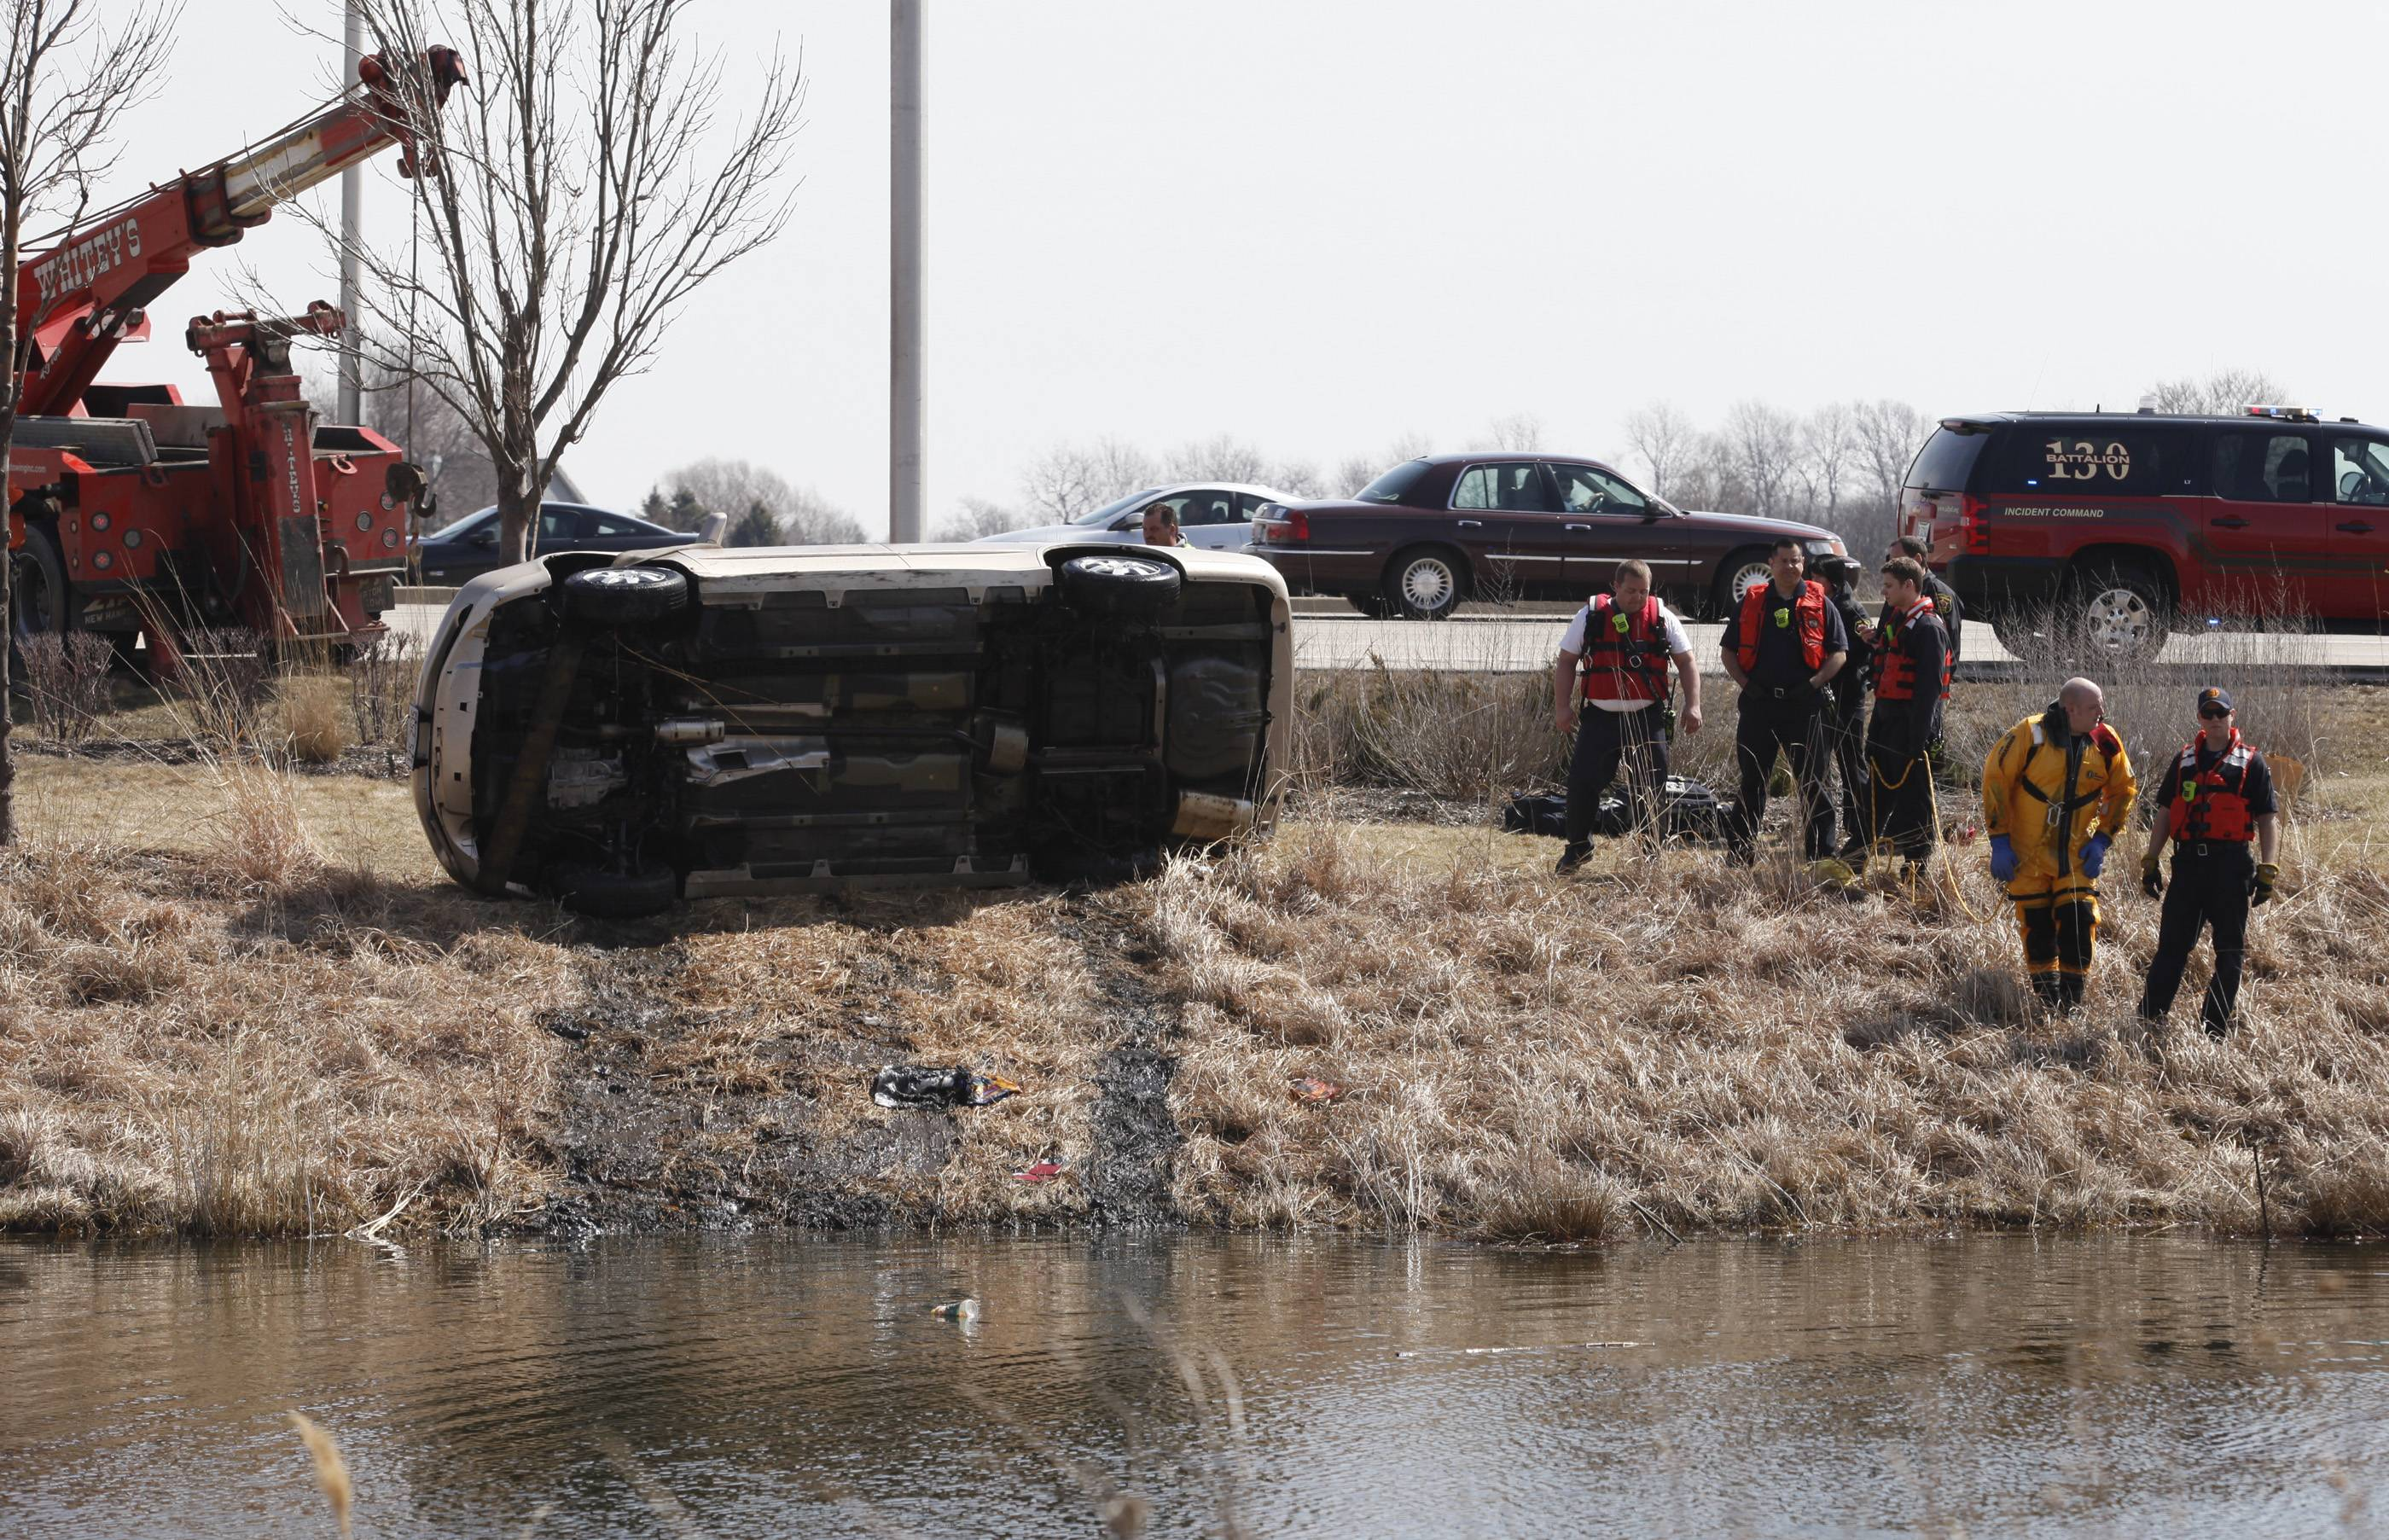 The car that crashed into a pond near Algonquin Commons is pulled from the water Wednesday afternoon after first responders smashed the vehicle's sunroof and pulled the driver from the sinking car. The driver was unconscious and not breathing when he was pulled from the car.